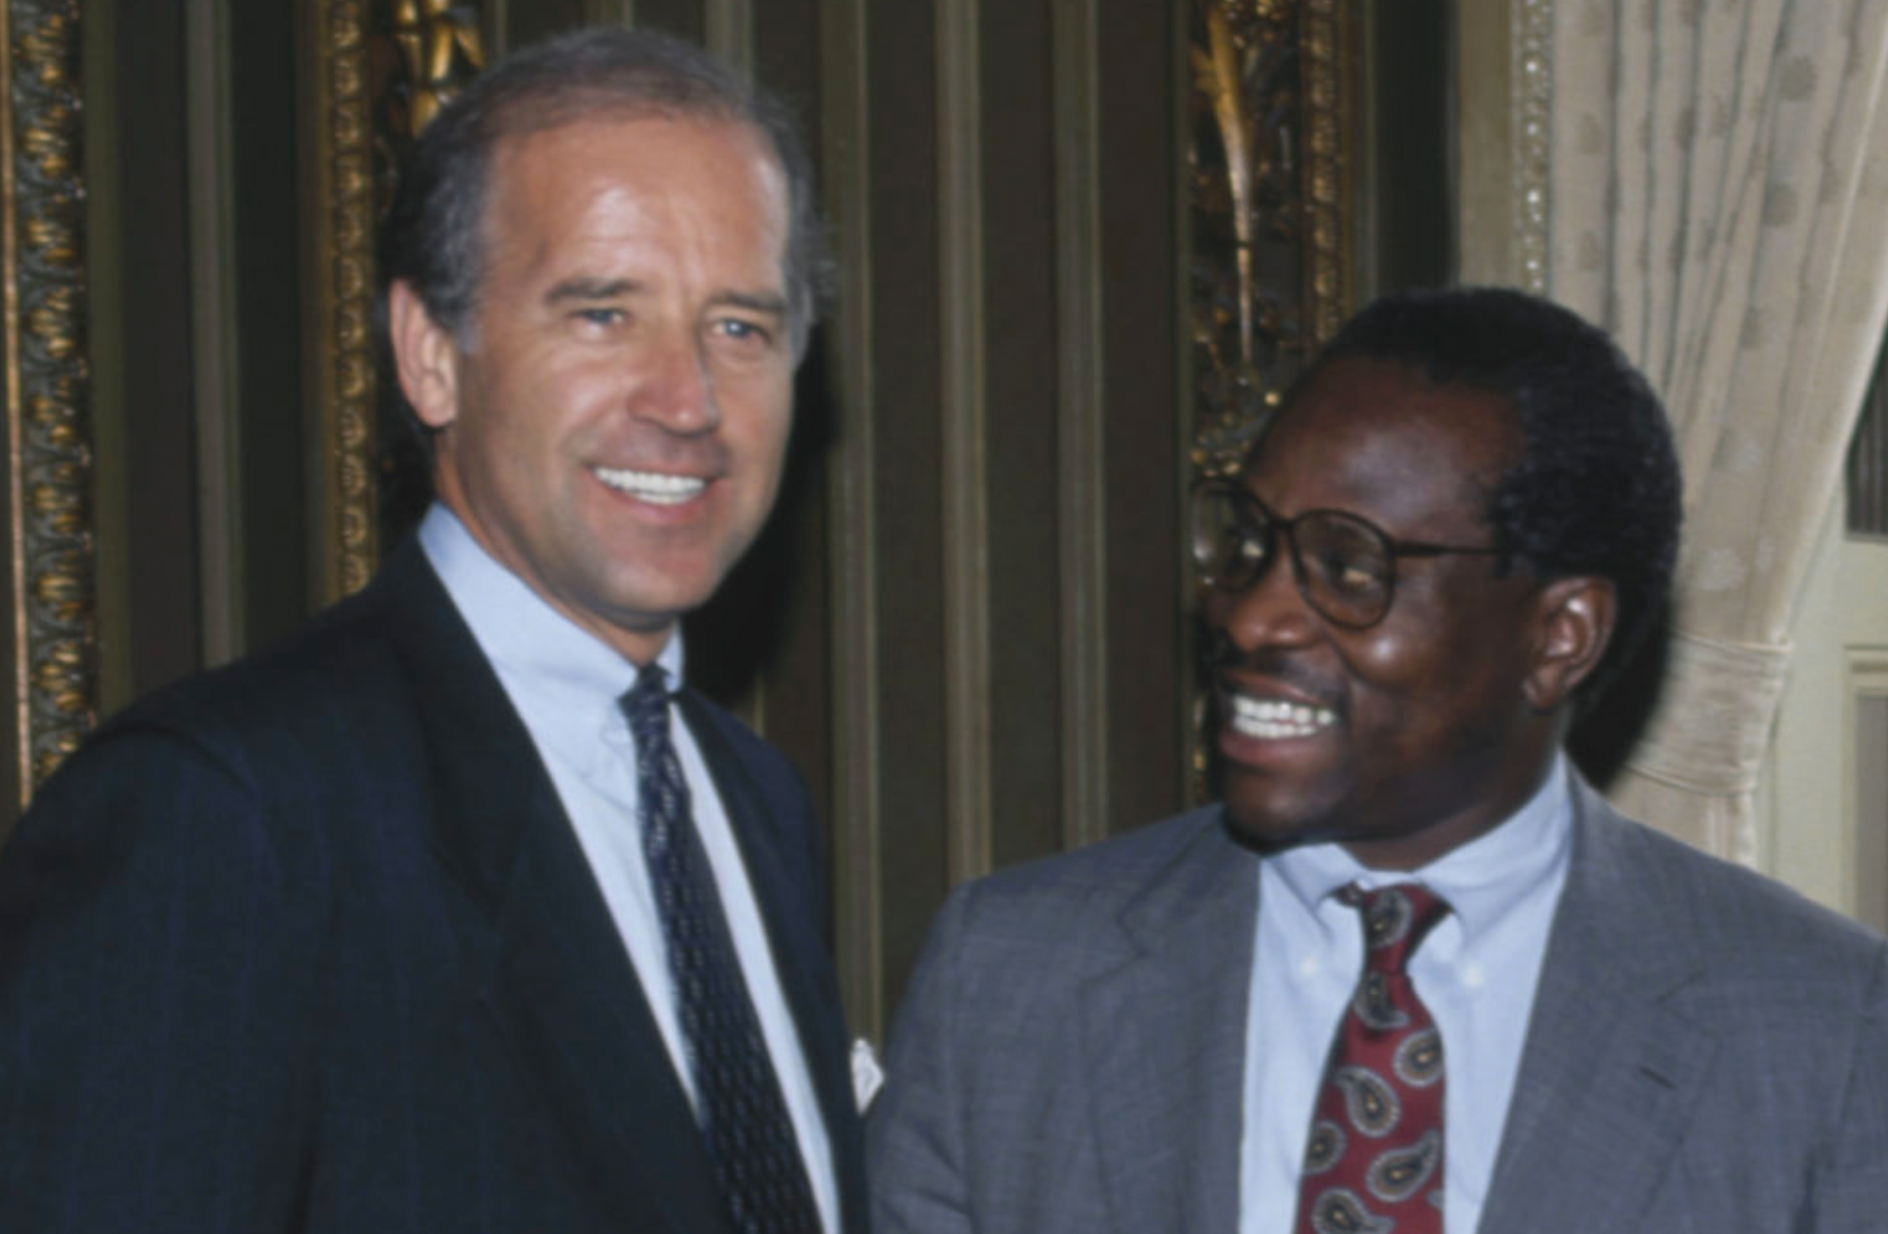 Biden poses with then-Supreme Court nominee Clarence ThomasClarence Thomas (1991)